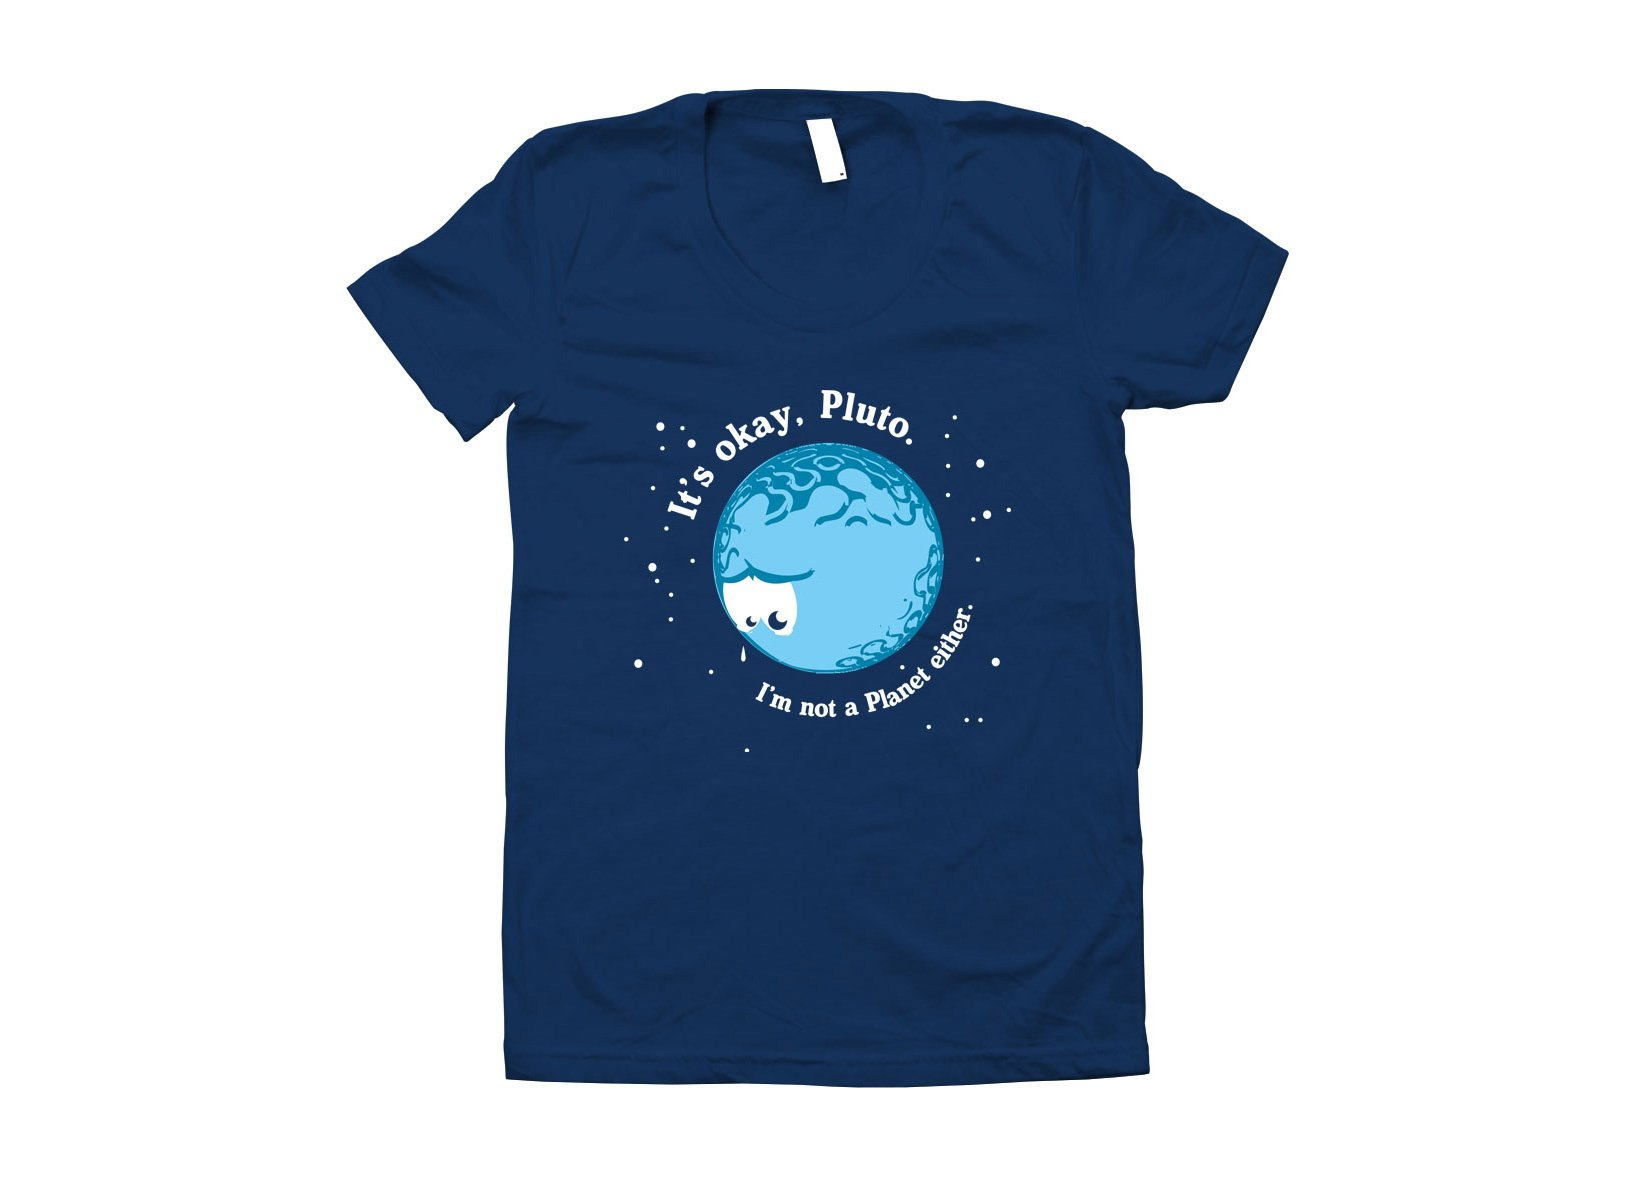 It's Okay Pluto on Juniors T-Shirt